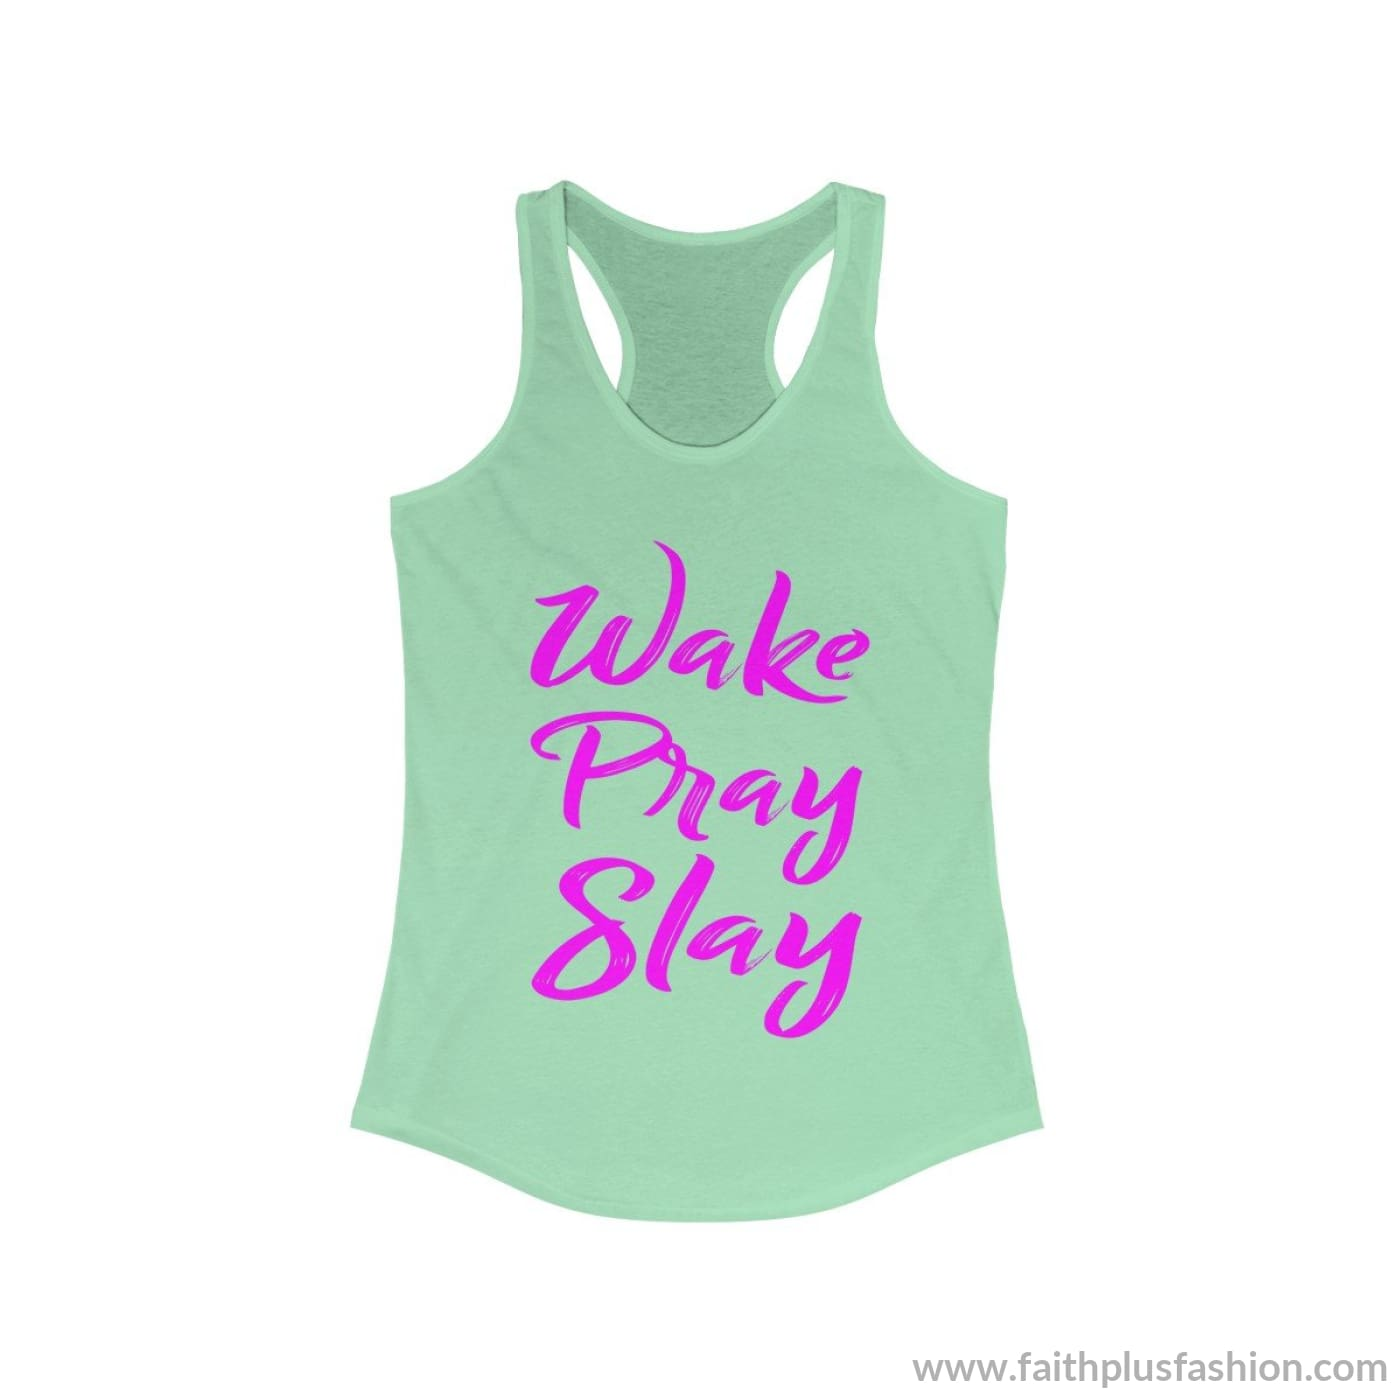 Wake Pray Slay Womens Christian Tank Top - Solid Mint / Xs - Tank Top